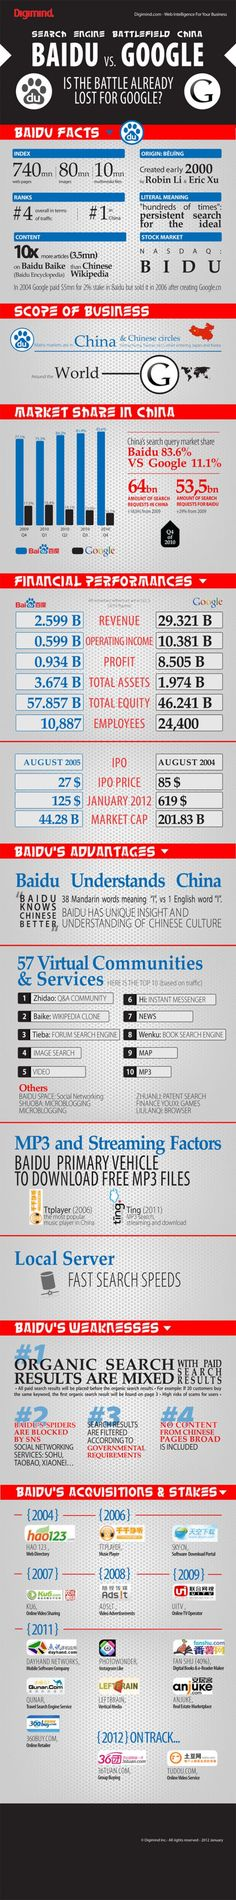 Baidu vs. Google in China - Google's approach to China, which the company says it is still focused on despite the fact that it relocated its search engine to Hong Kong in 2010. Of all of the challenges that Google faces there, the fierce competition provided by Chinese rival Baidu is one of the biggest. Read More - http://elegacy-in.blogspot.in/2012/03/baidu-vs-google-in-china.html